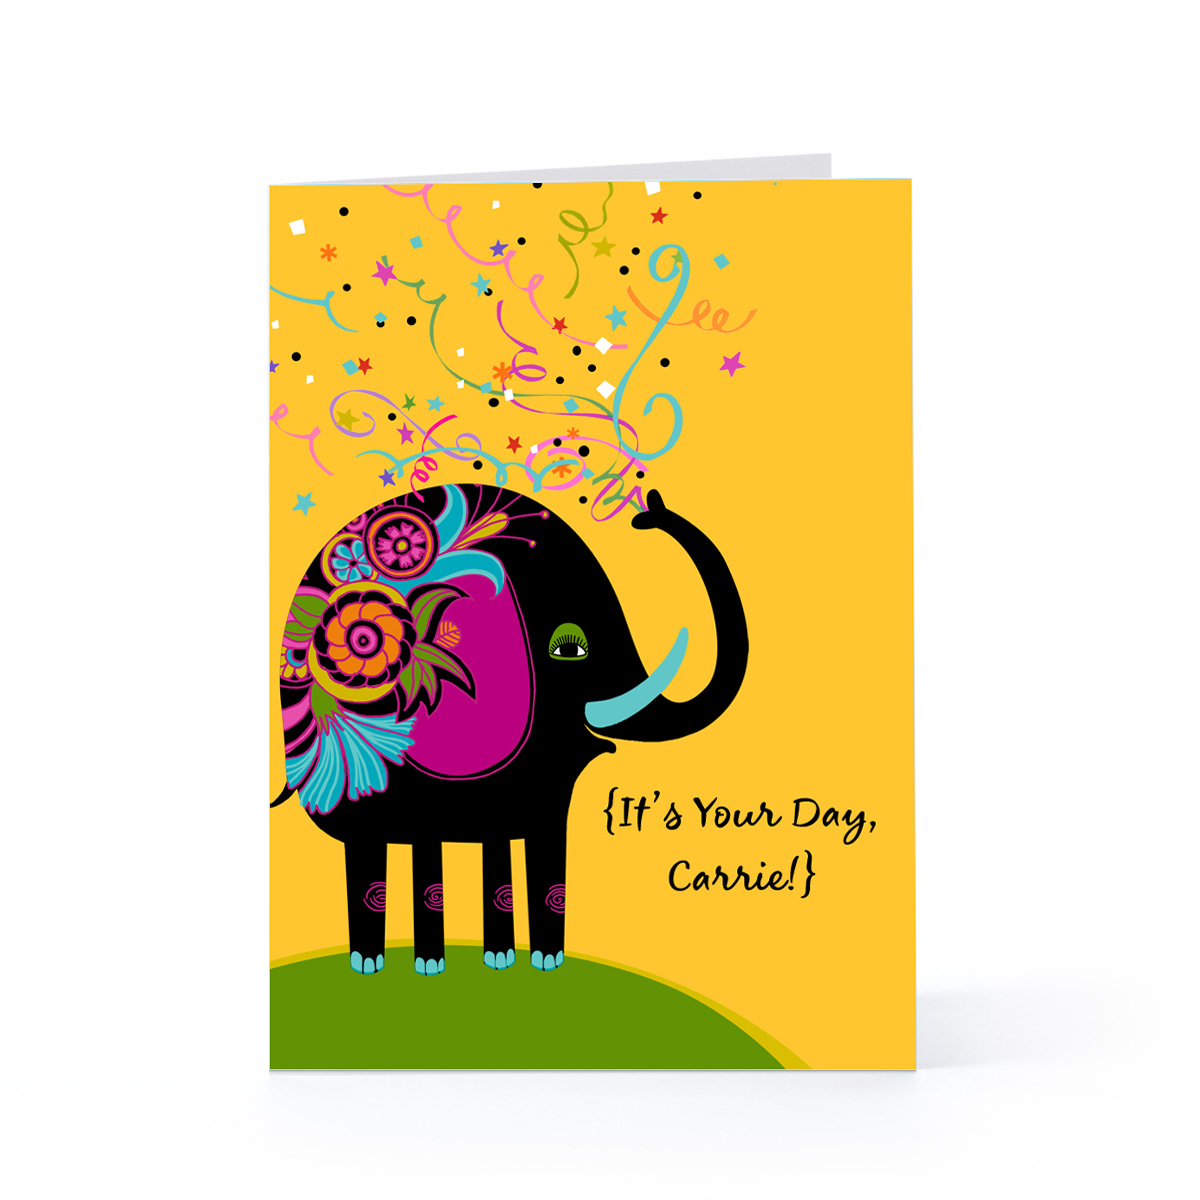 Birthday Card Sayings Hallmark : Quotes funny hallmark card quotesgram